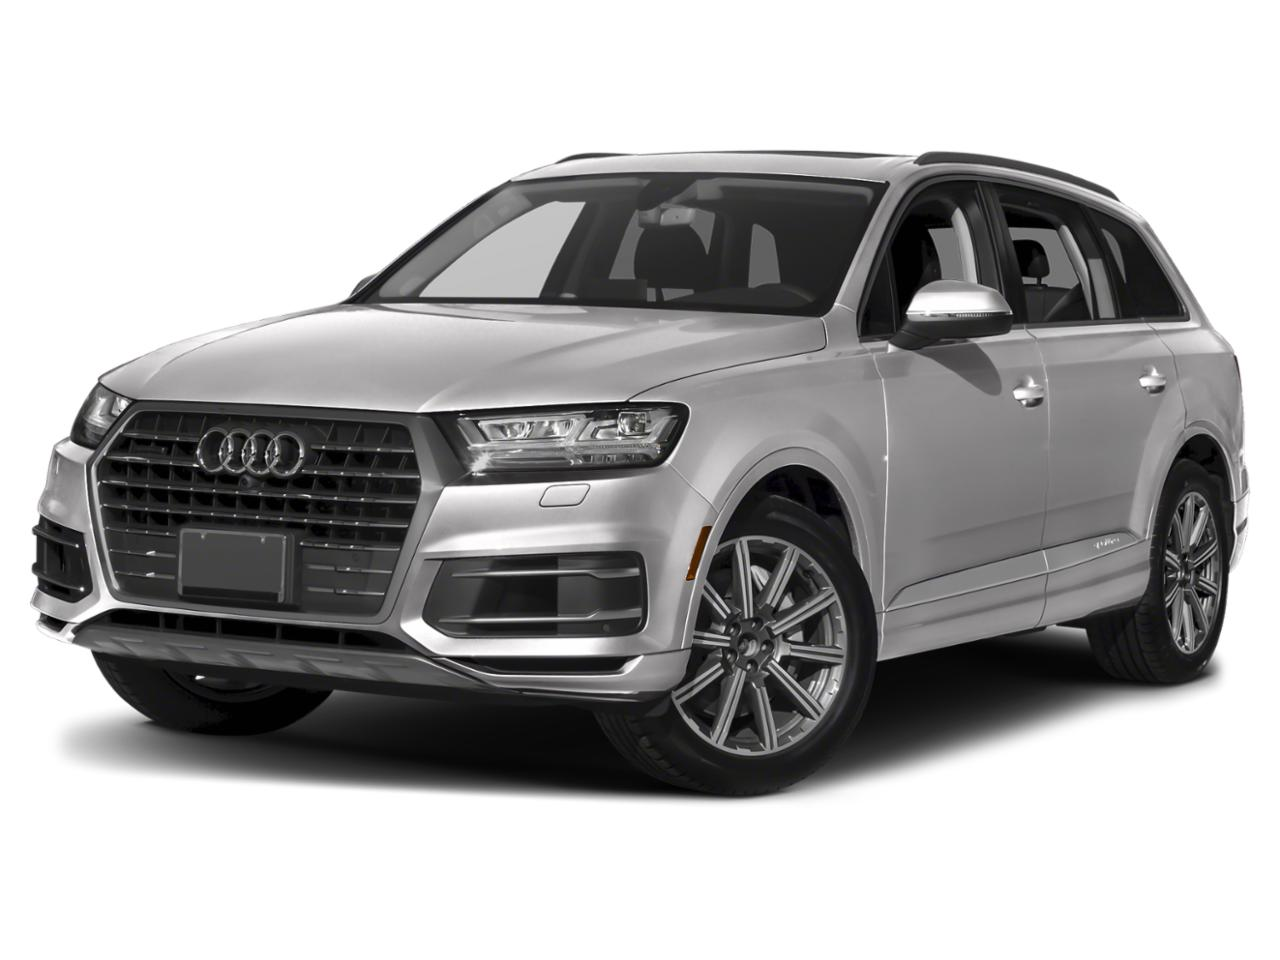 2019 Audi Q7 Vehicle Photo in Portland, OR 97225